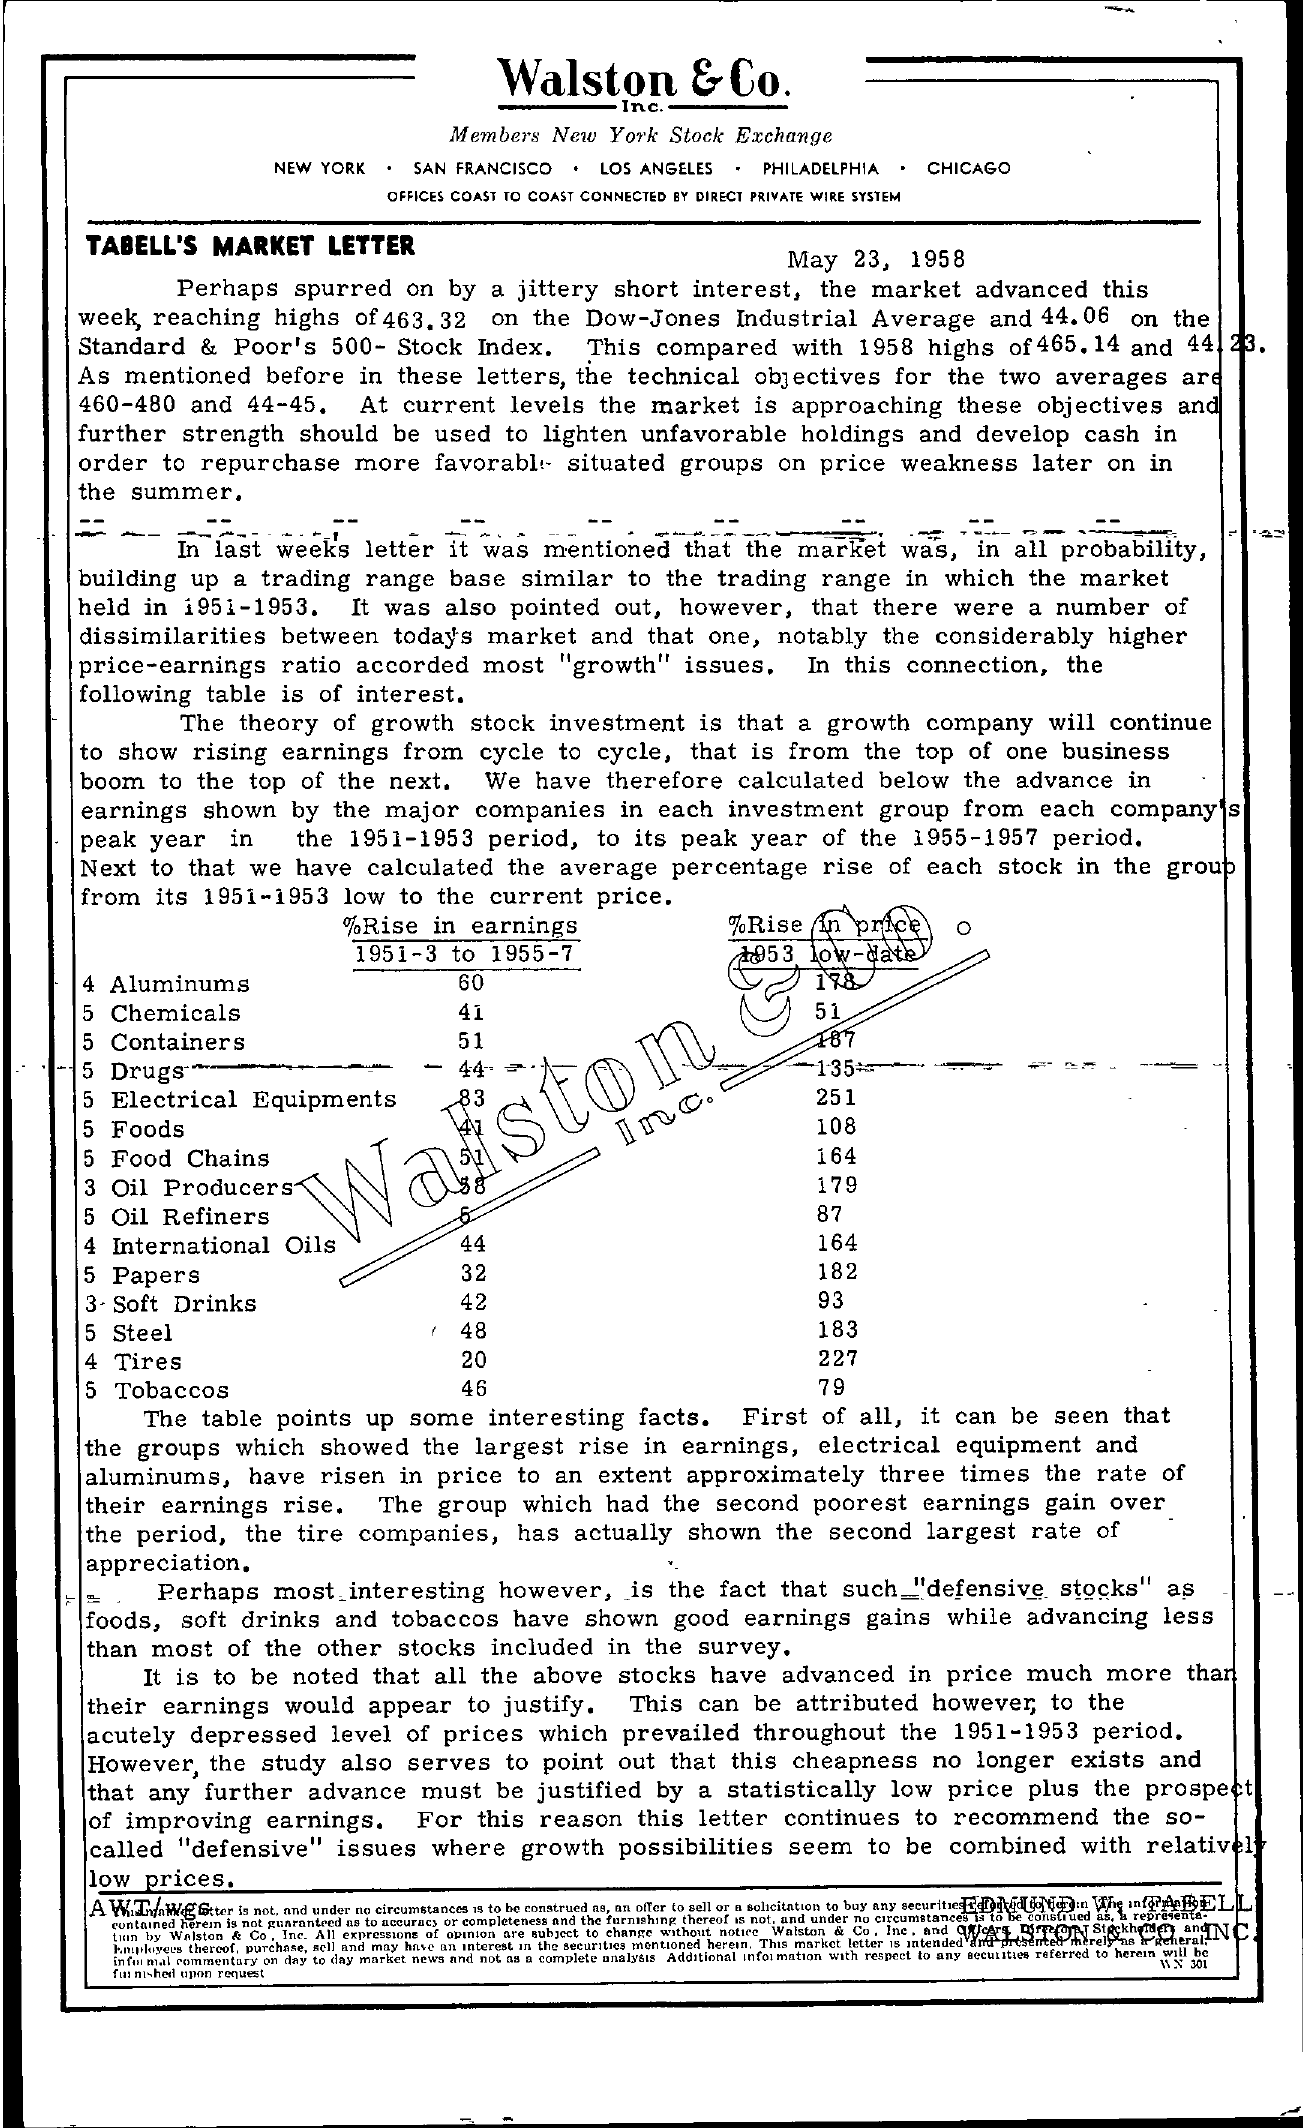 Tabell's Market Letter - May 23, 1958